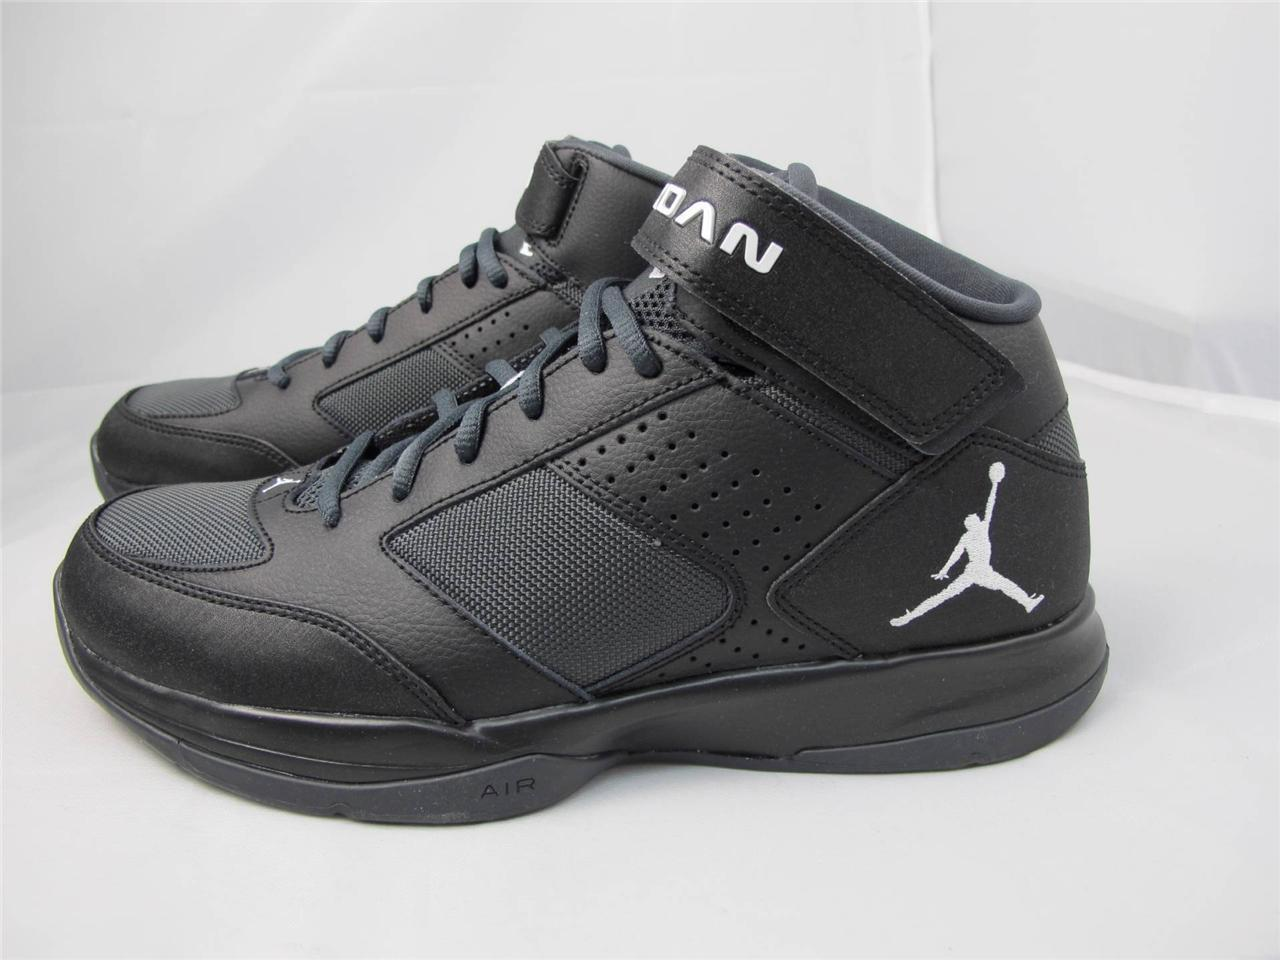 NEW MEN'S   JORDAN BCT MID 2 616362-010 The most popular shoes for men and women